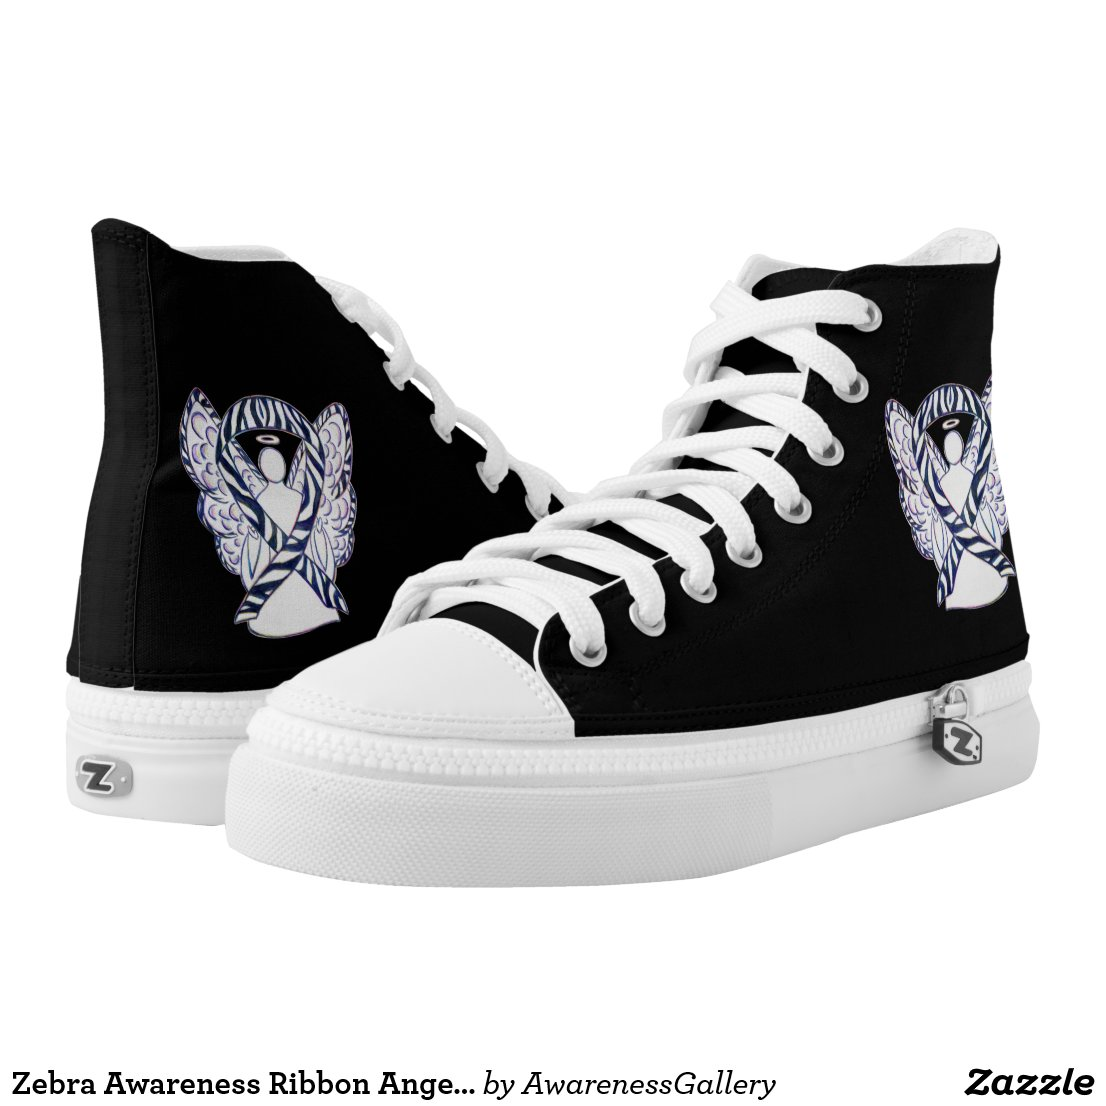 Zebra Awareness Ribbon Angel Custom Shoes